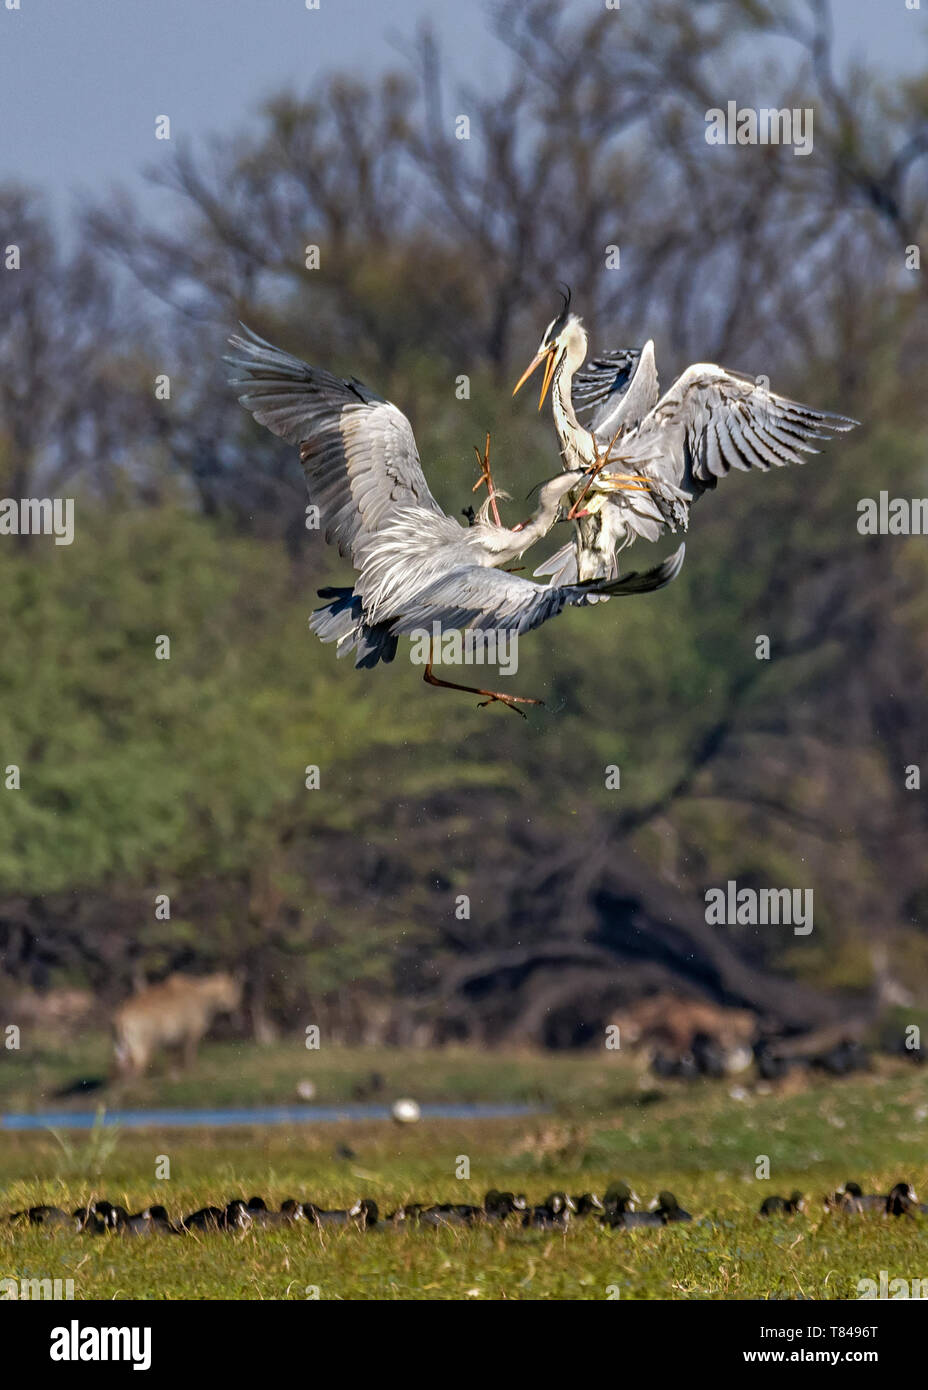 Grey heron (Ardea cinerea), In this frame two gray heron birds were fighting for it's territory at Keoladeo National Park, Bharatpur, India. - Stock Image